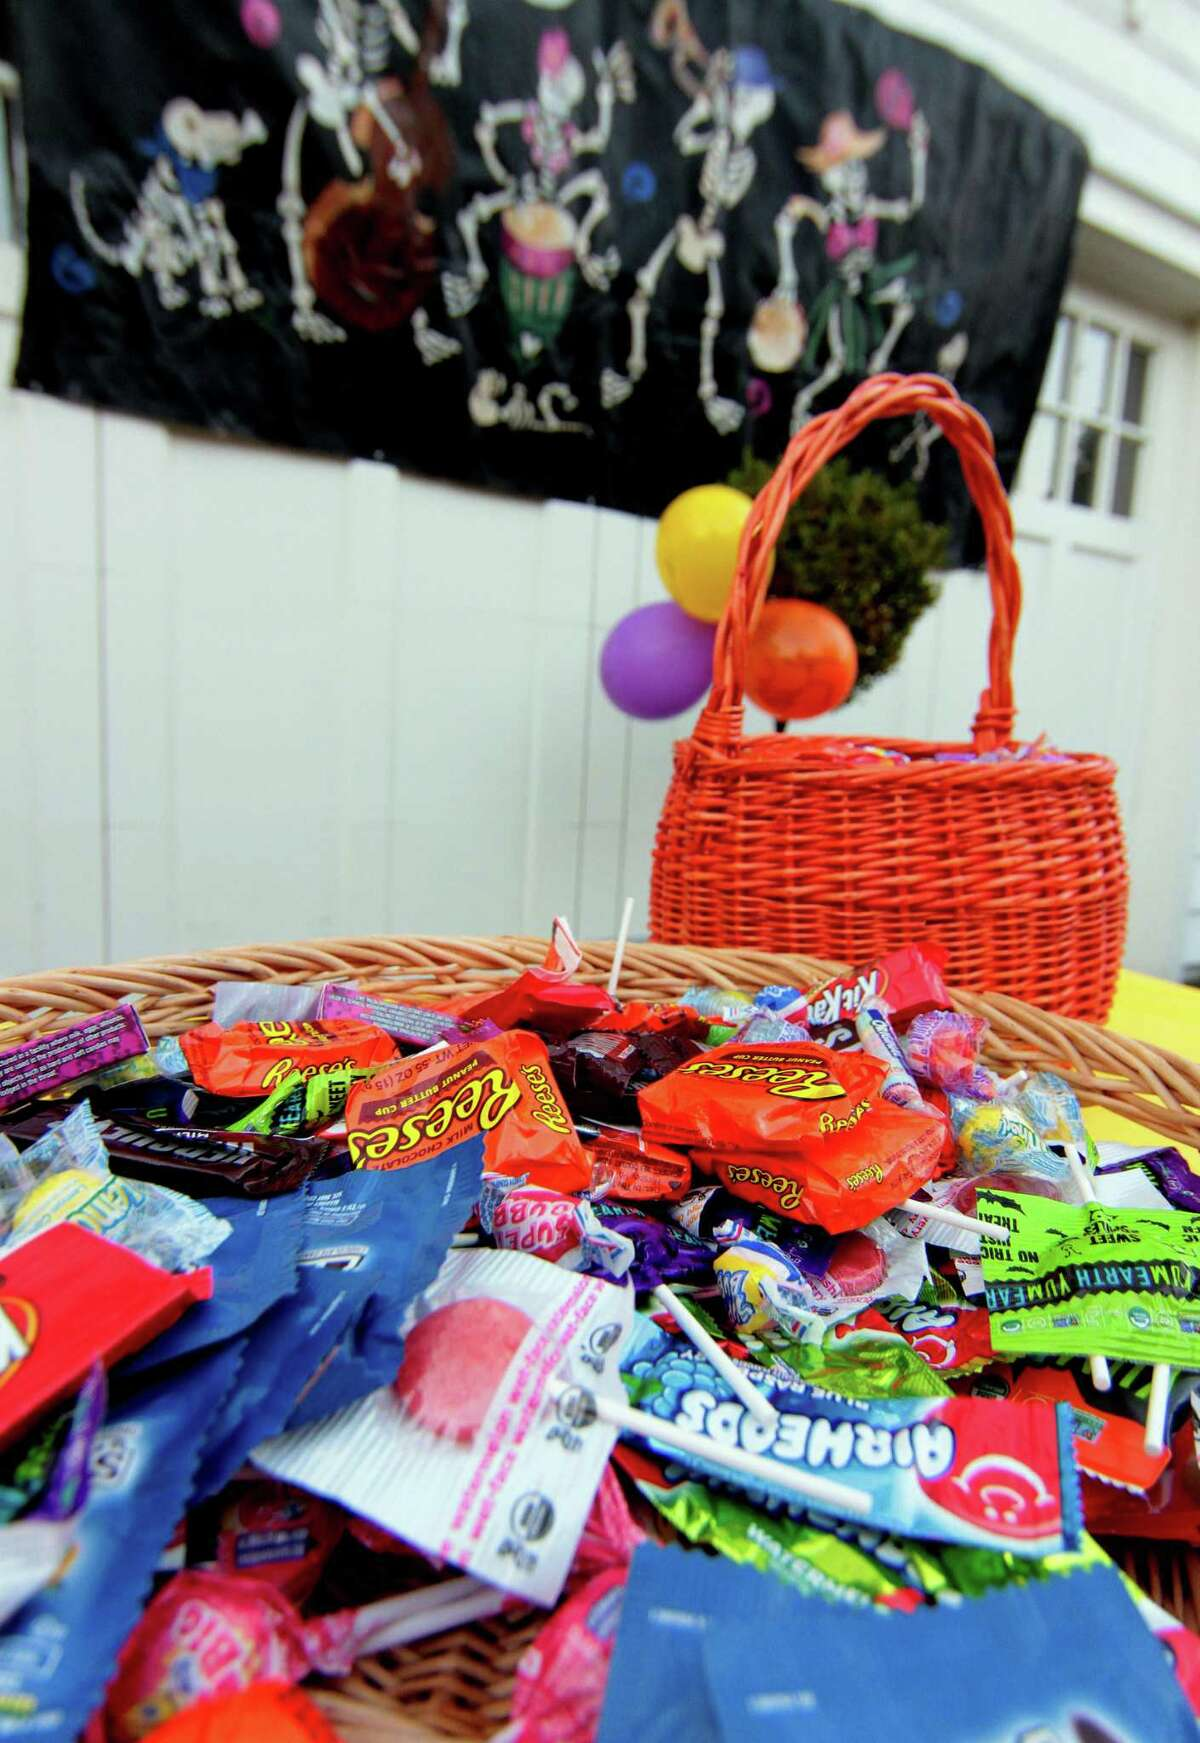 Candy sits out for trick or treaters in Rowayton, Conn., on Saturday Oct. 31, 2020.